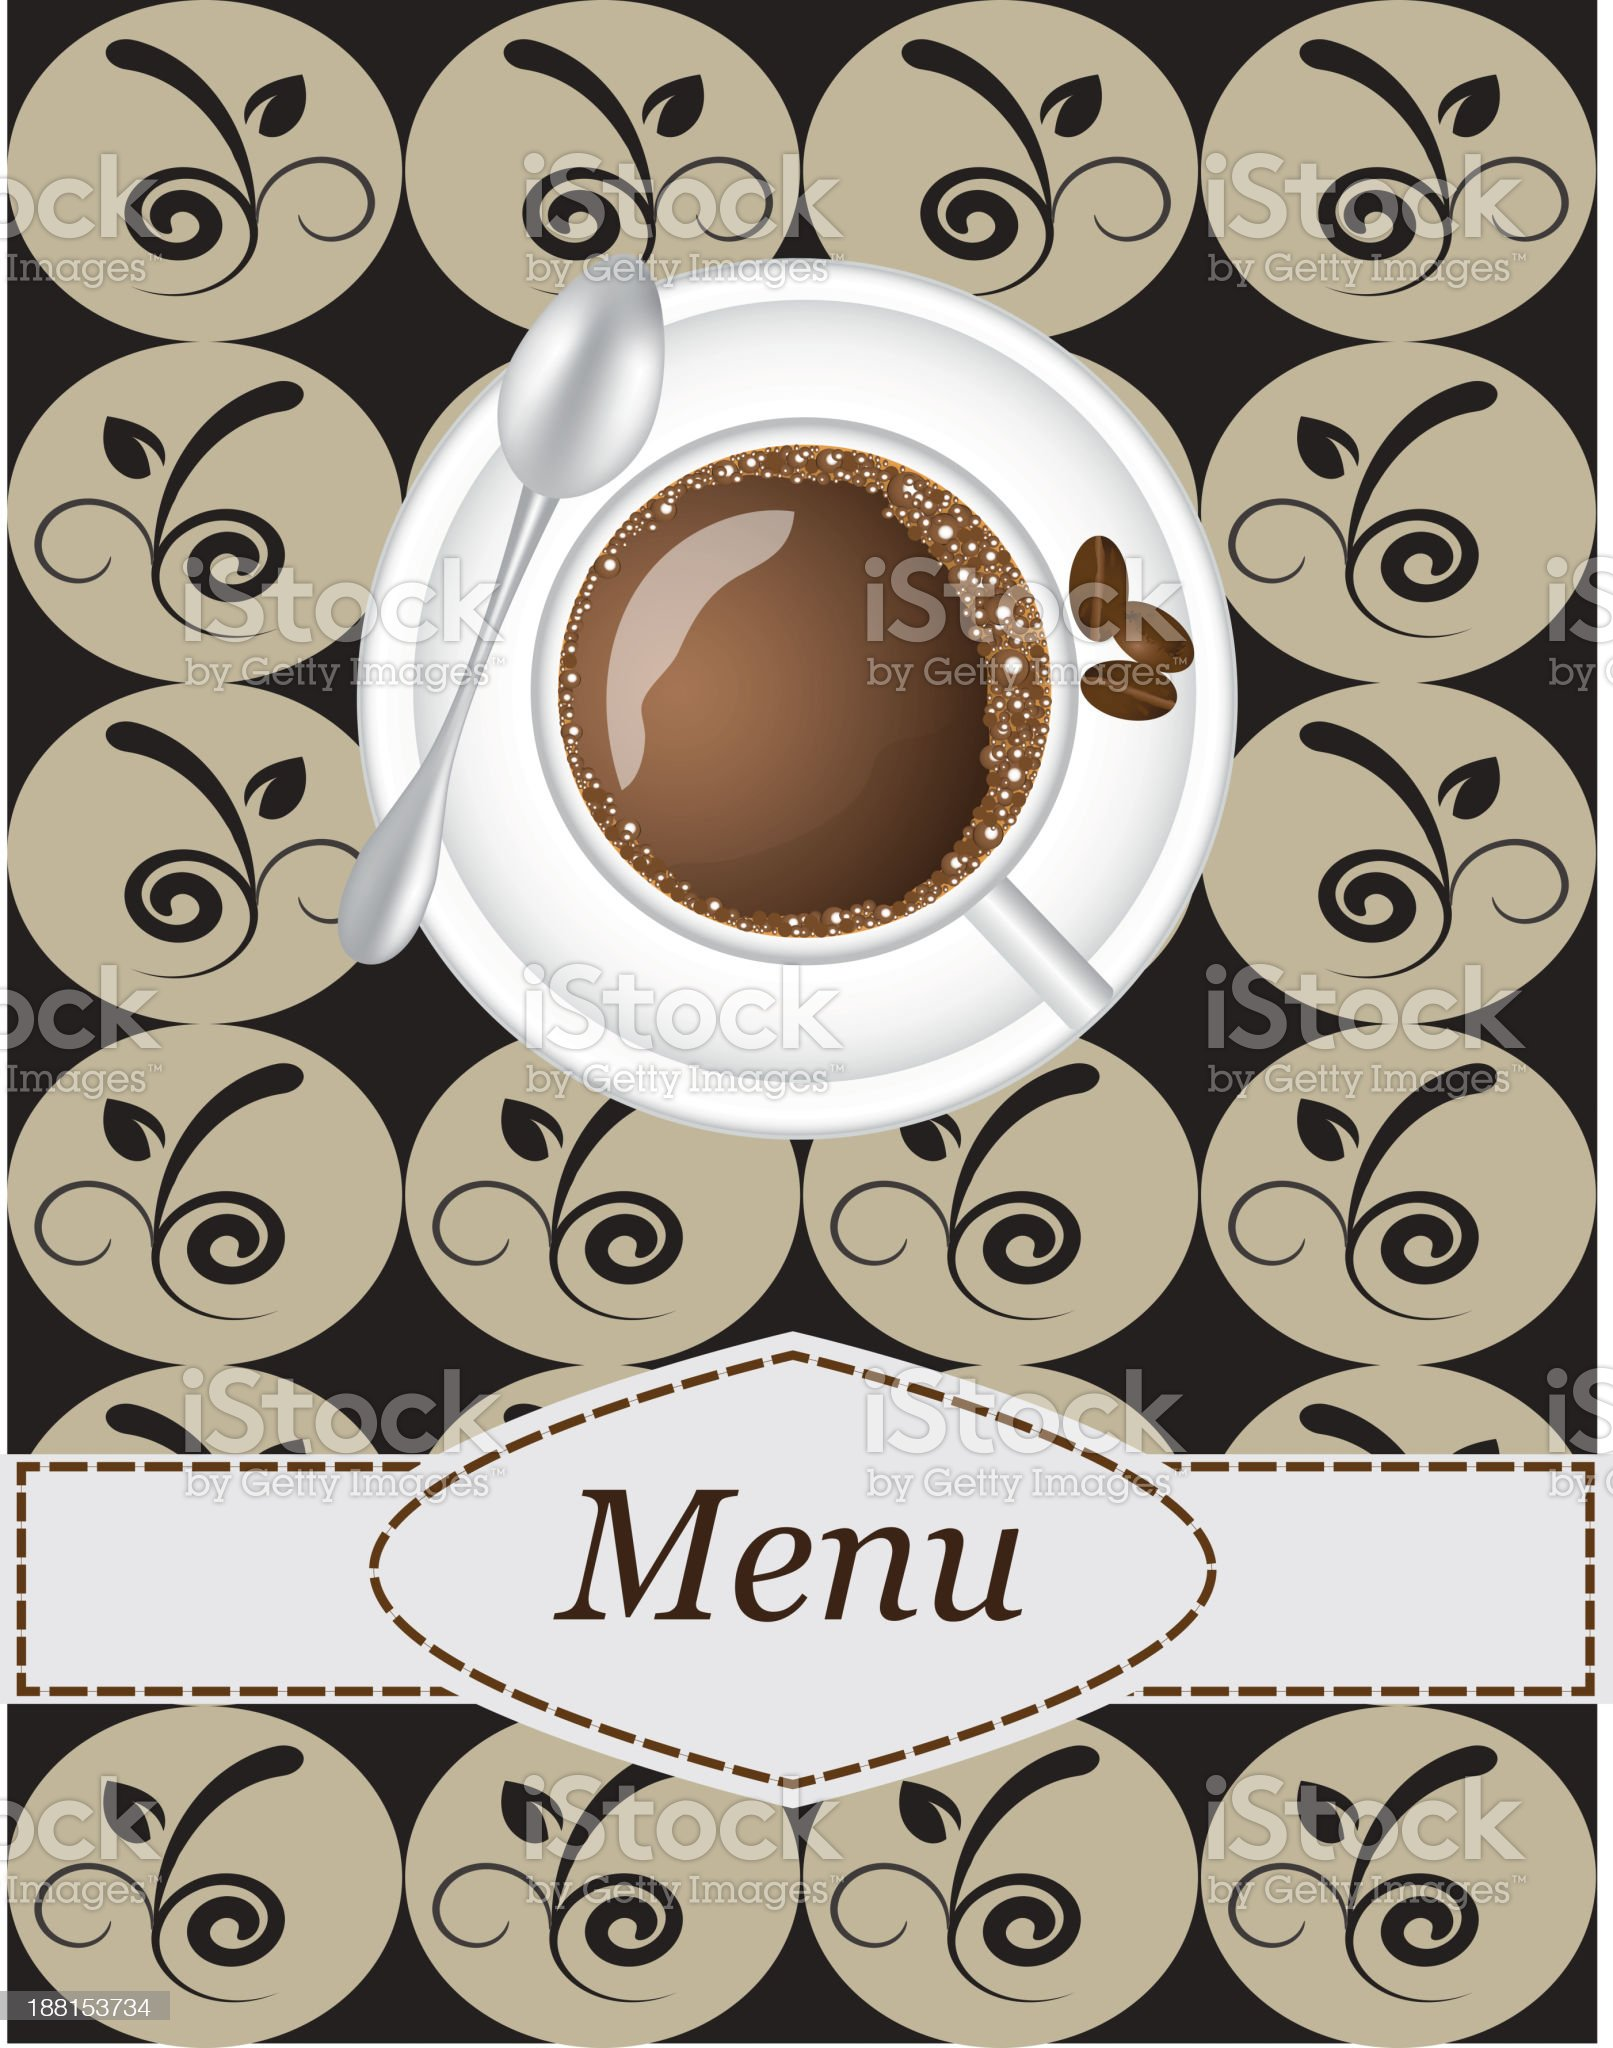 coffee menu royalty-free stock vector art